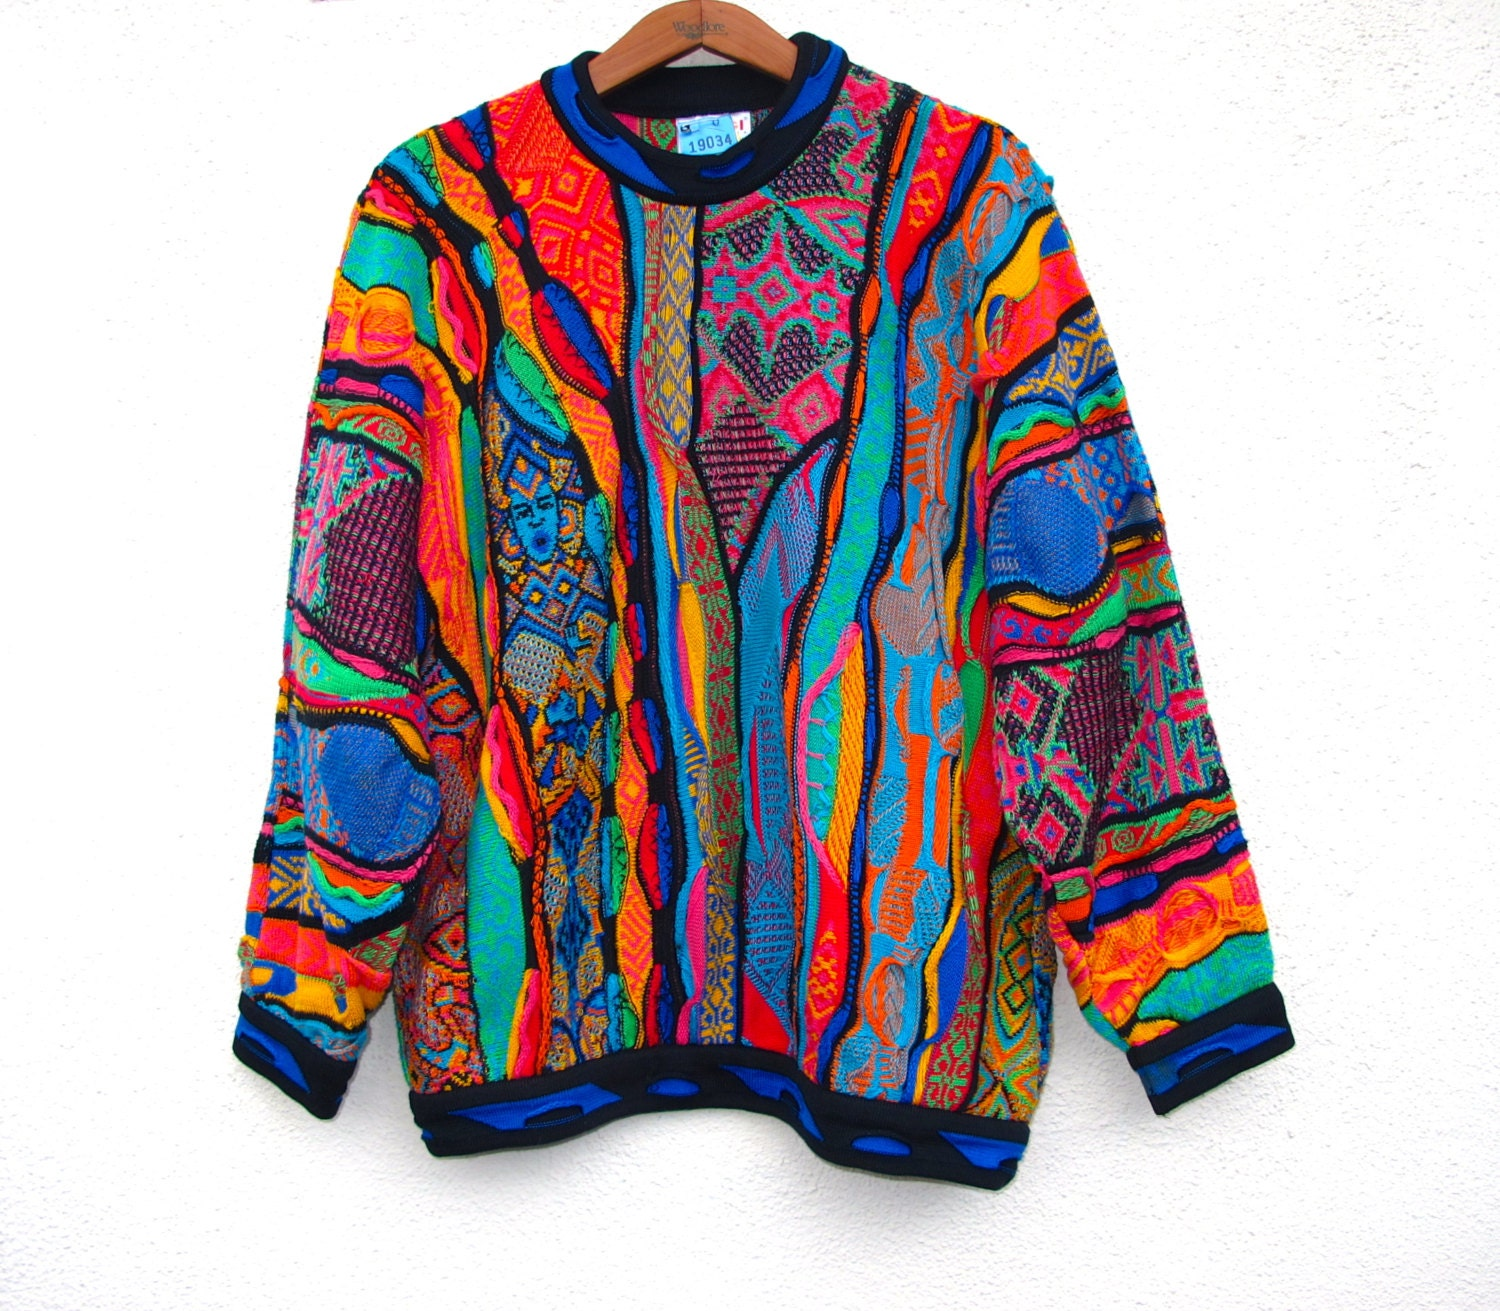 Find great deals on eBay for australian sweater. Shop with confidence.